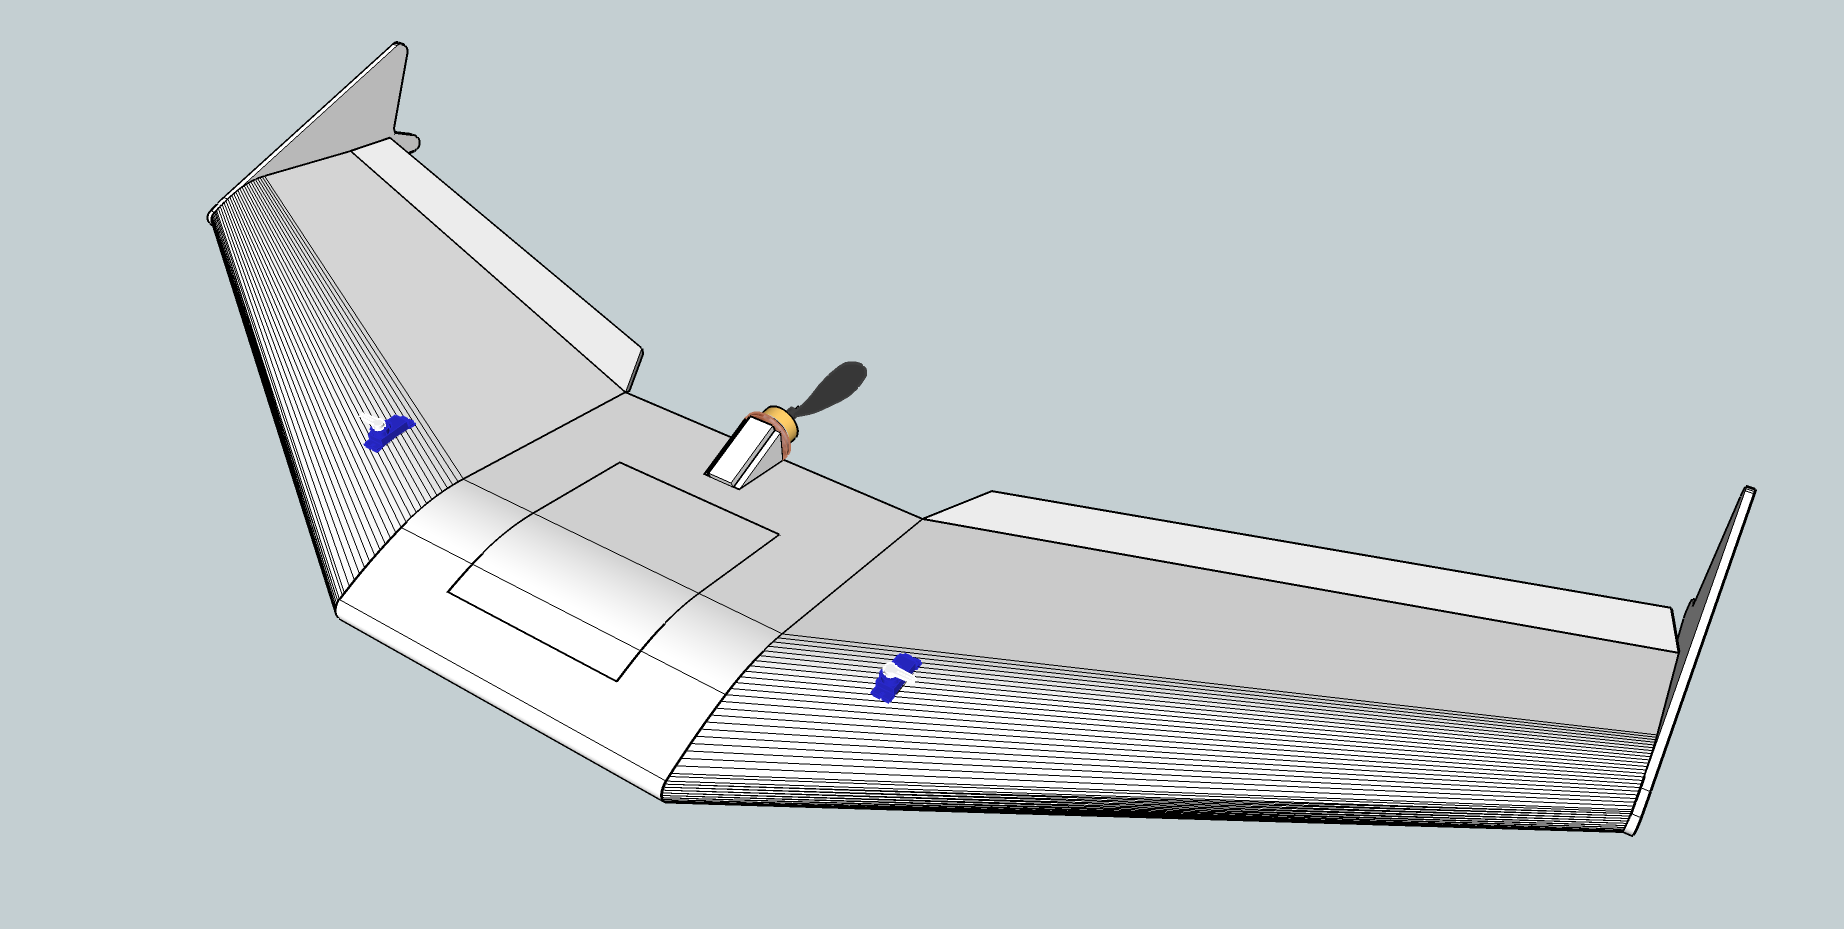 45-Inch-Swept-Flying-Wing-ISO.png